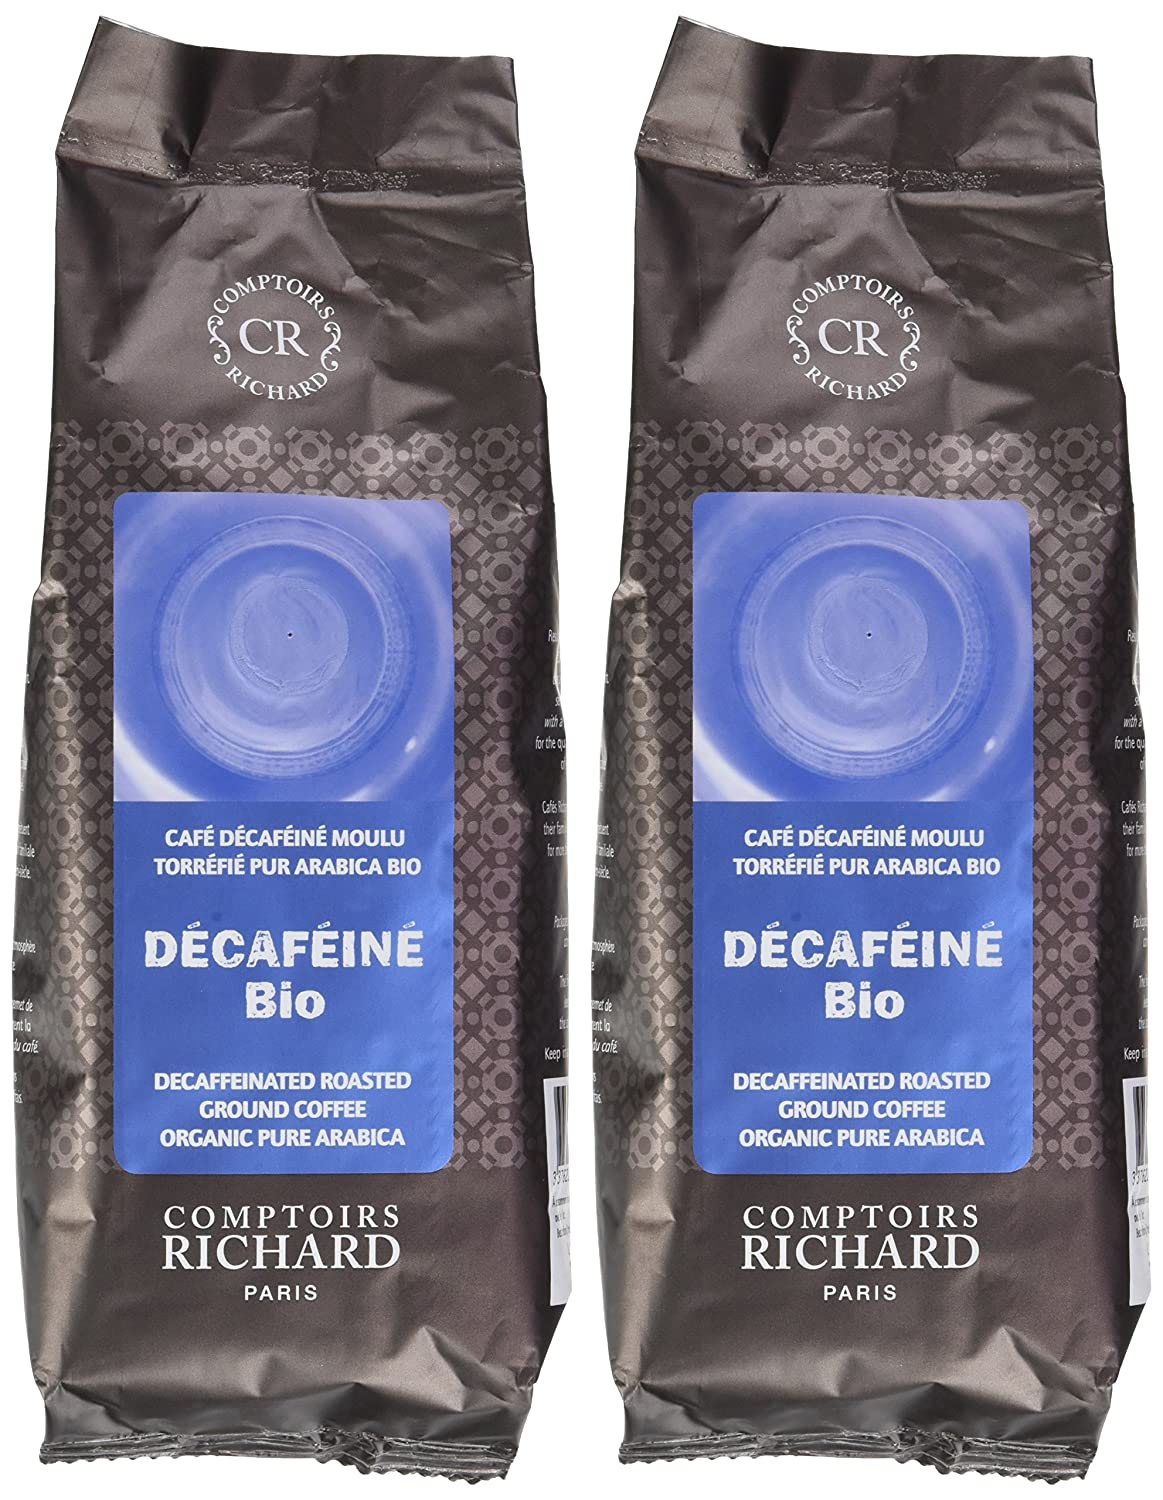 Comptoirs Richard Decafeine Moulu Pur Arabica Bio Comptoirs Richard